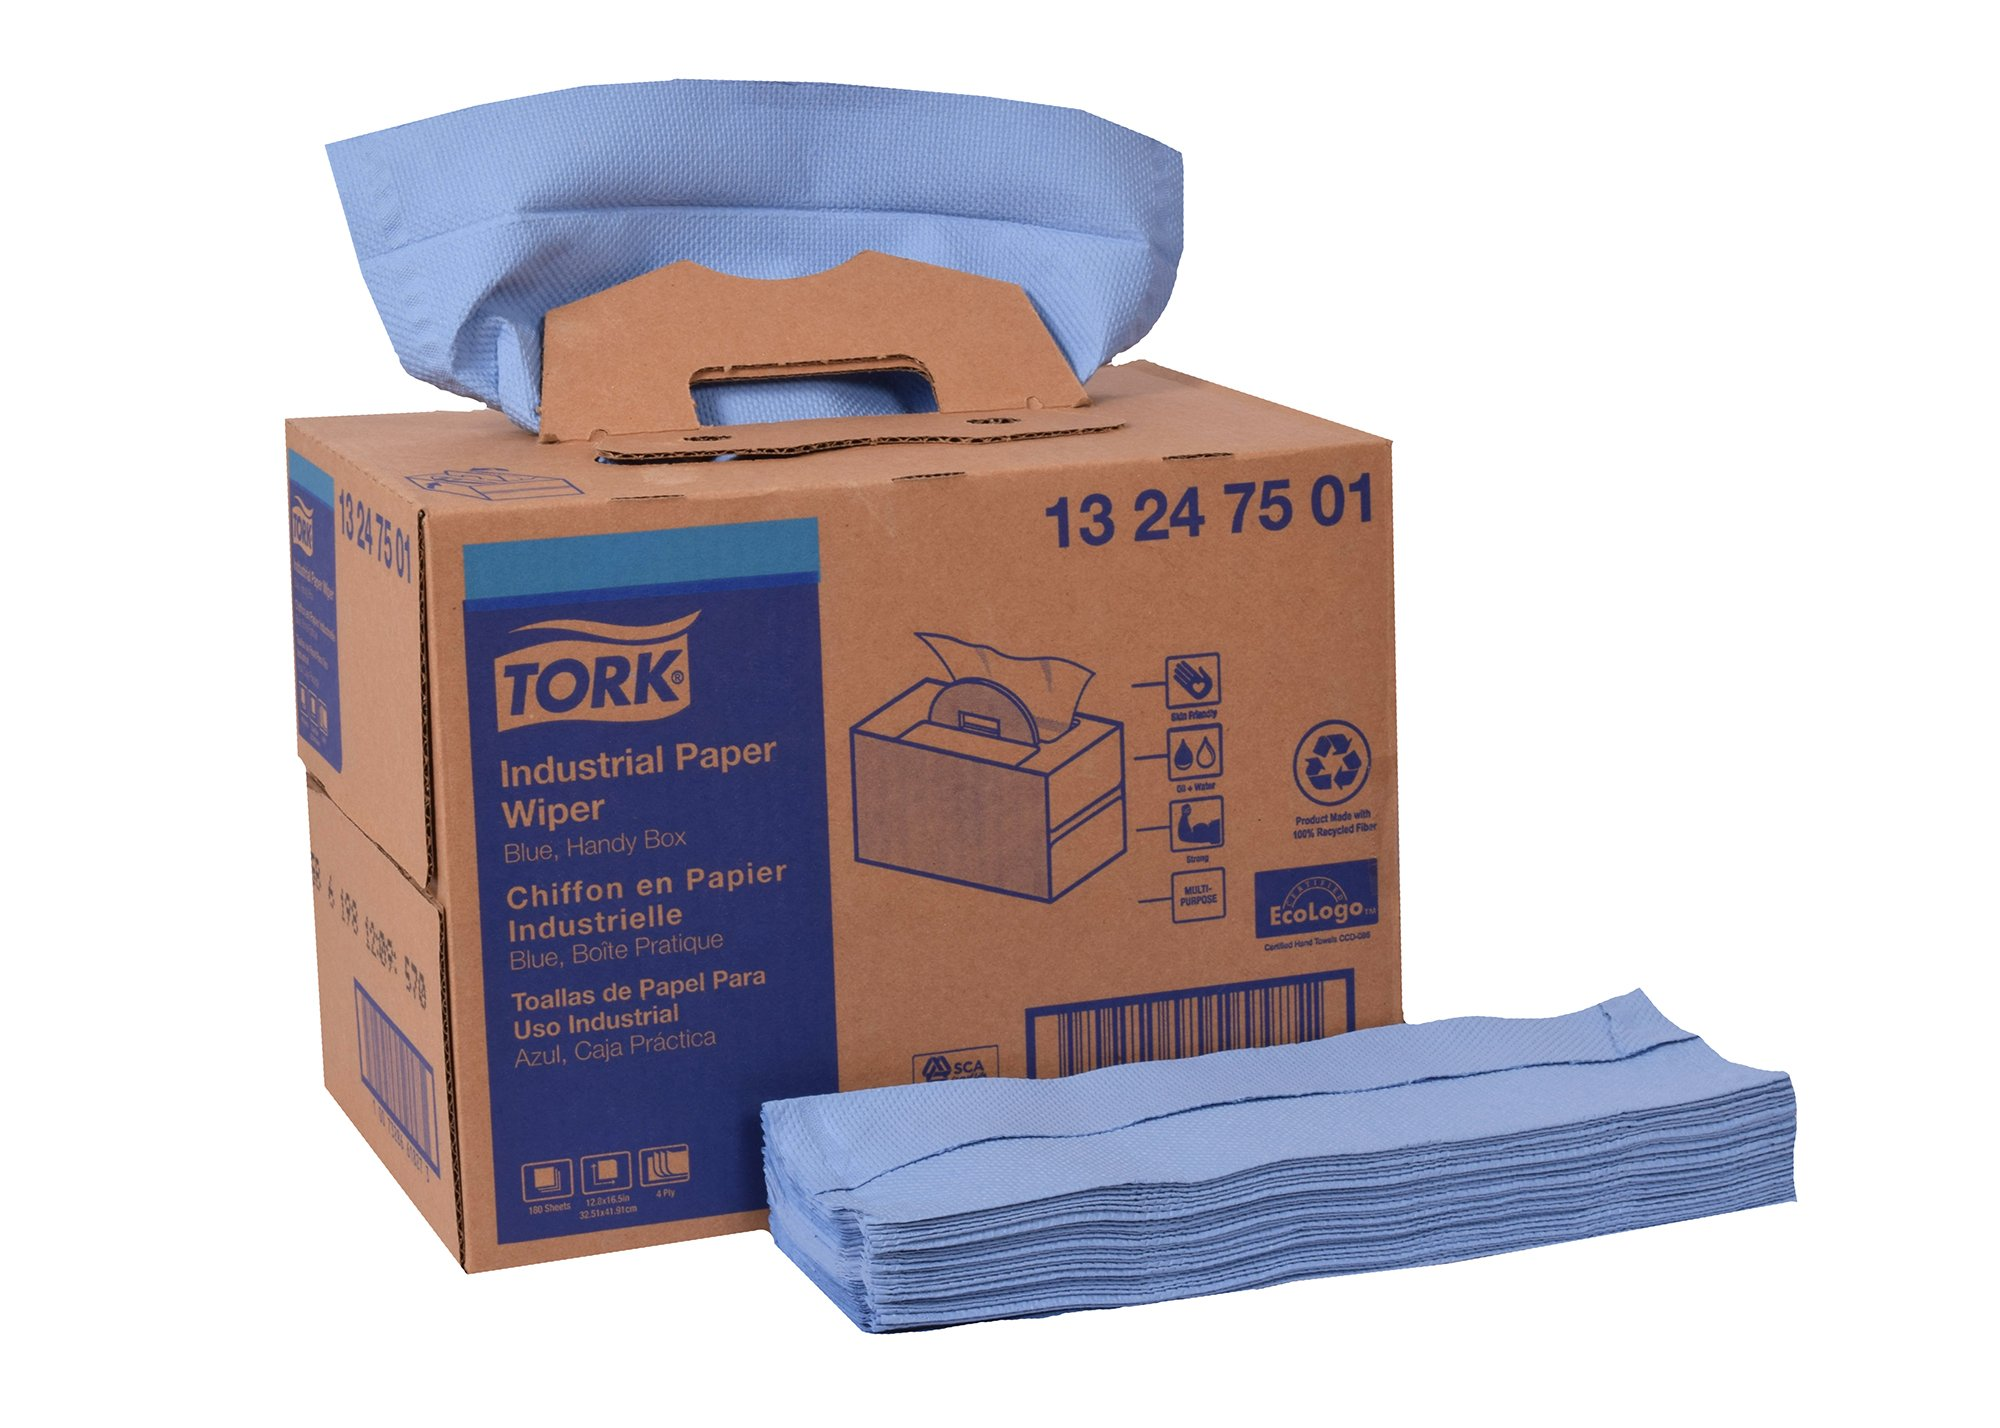 Tork 13247501 Industrial Paper Wiper, Handy Box, 4-Ply, 12.8'' Width x 16.5'' Length, Blue (Case of 1 Box, 180 Towels) by Tork